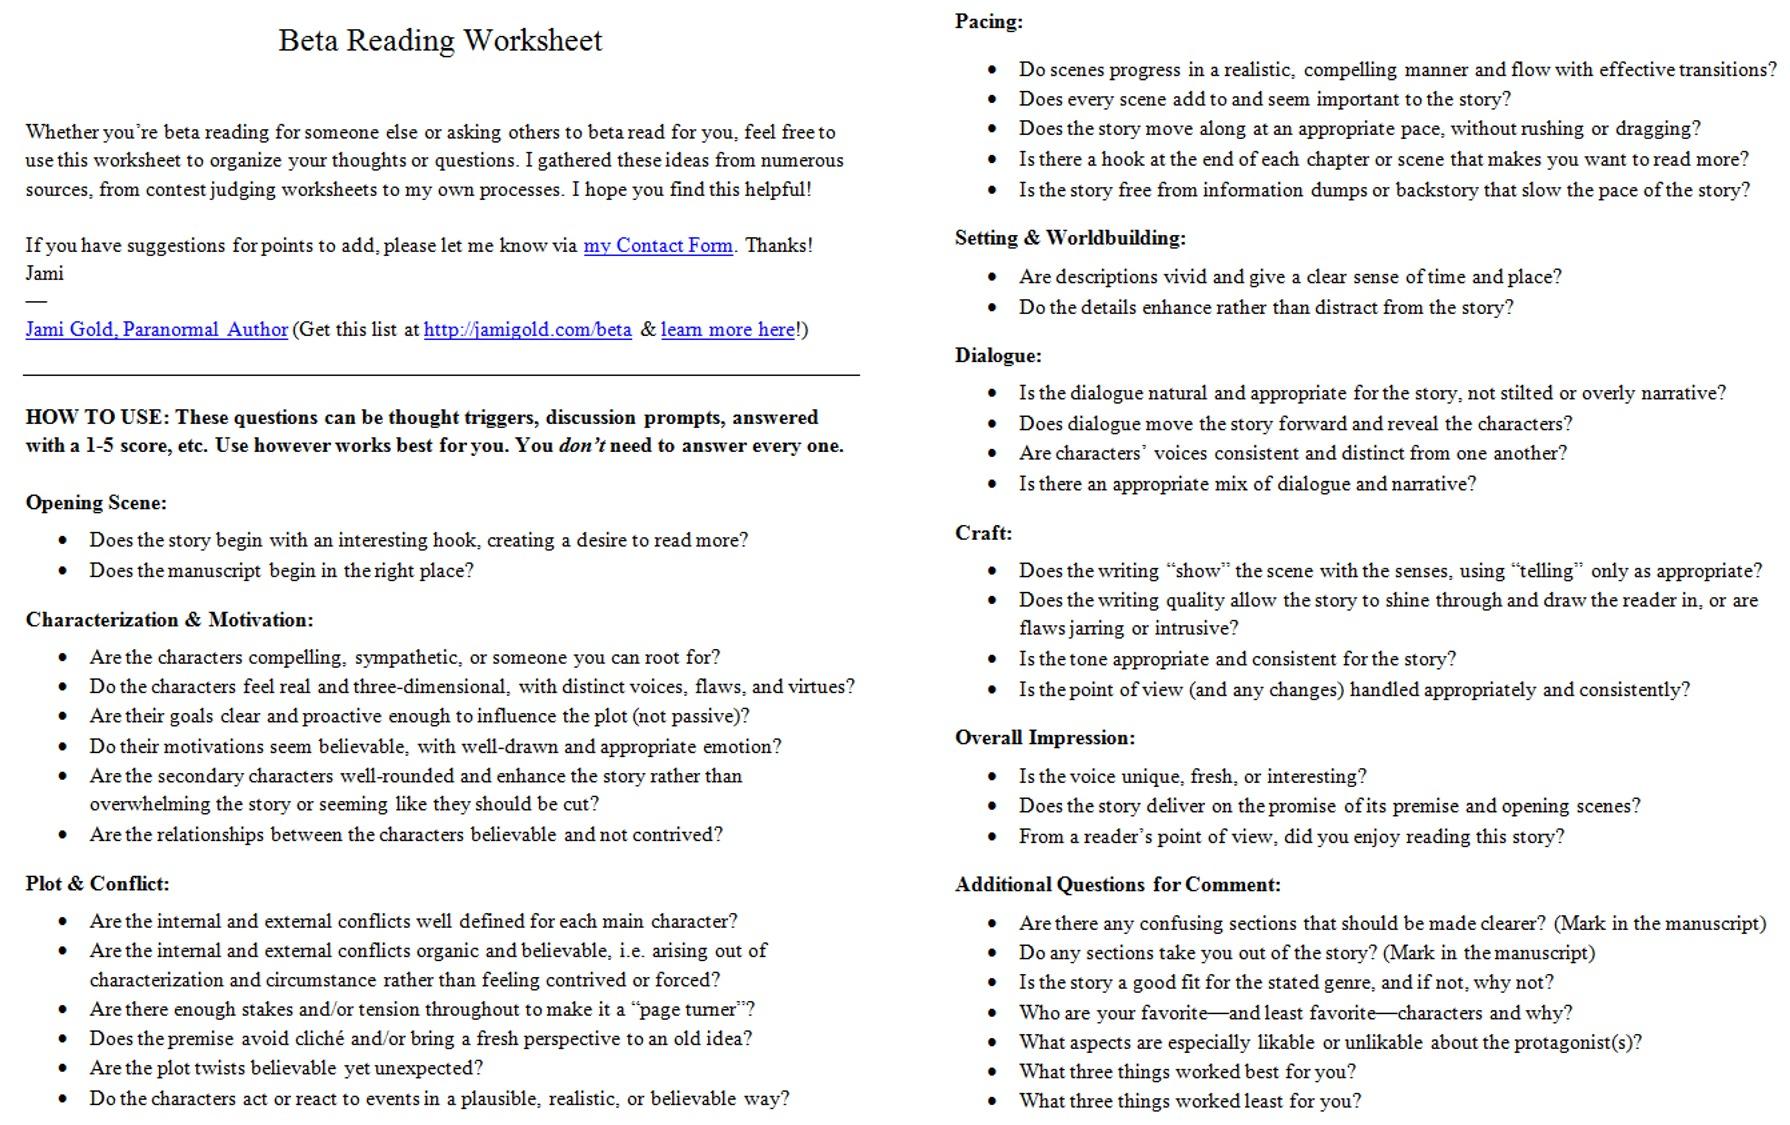 Weirdmailus  Winning Worksheets For Writers  Jami Gold Paranormal Author With Lovable Screen Shot Of The Twopage Beta Reading Worksheet With Cool Free Printable Math Worksheets Reducing Fractions Also Free Spelling Worksheet Generator In Addition Evaluation And Management Worksheet And Base  Block Worksheets As Well As Subtraction Worksheet With Regrouping Additionally Missing Vowel Worksheets From Jamigoldcom With Weirdmailus  Lovable Worksheets For Writers  Jami Gold Paranormal Author With Cool Screen Shot Of The Twopage Beta Reading Worksheet And Winning Free Printable Math Worksheets Reducing Fractions Also Free Spelling Worksheet Generator In Addition Evaluation And Management Worksheet From Jamigoldcom